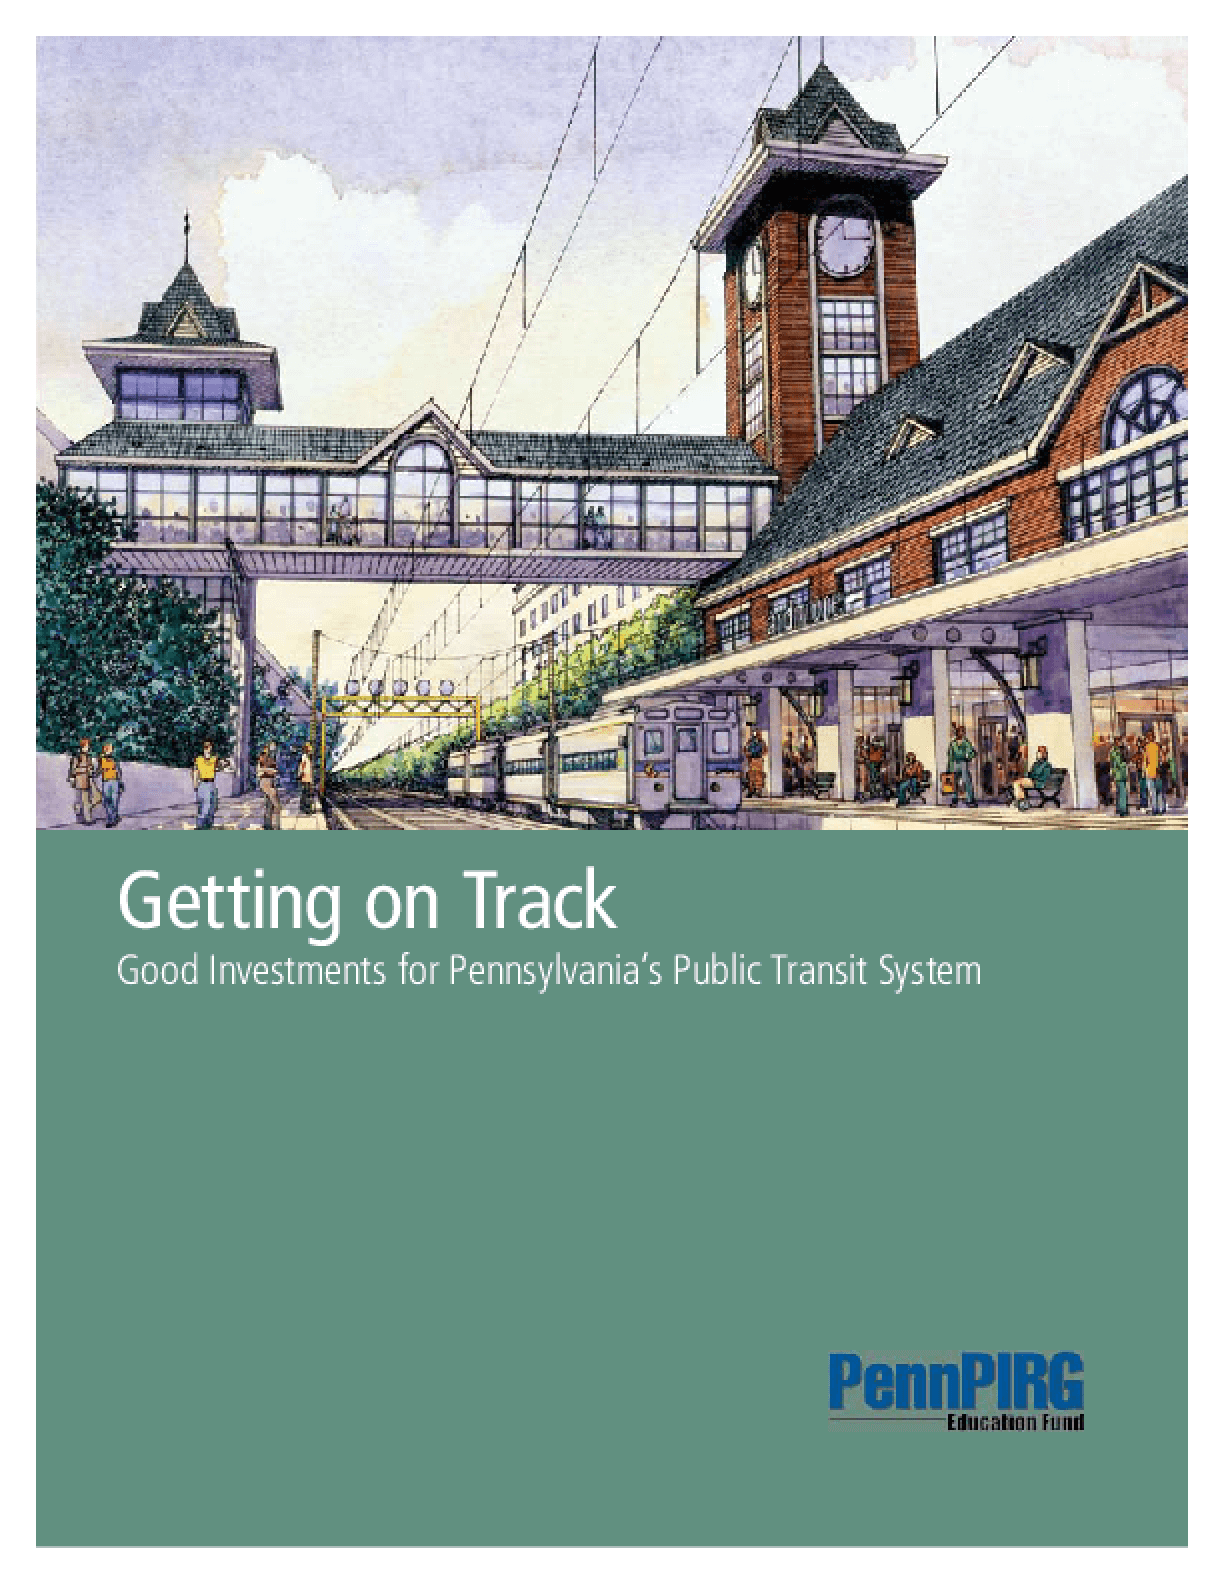 Getting on Track: Good Investments for Pennsylvania's Public Transit System